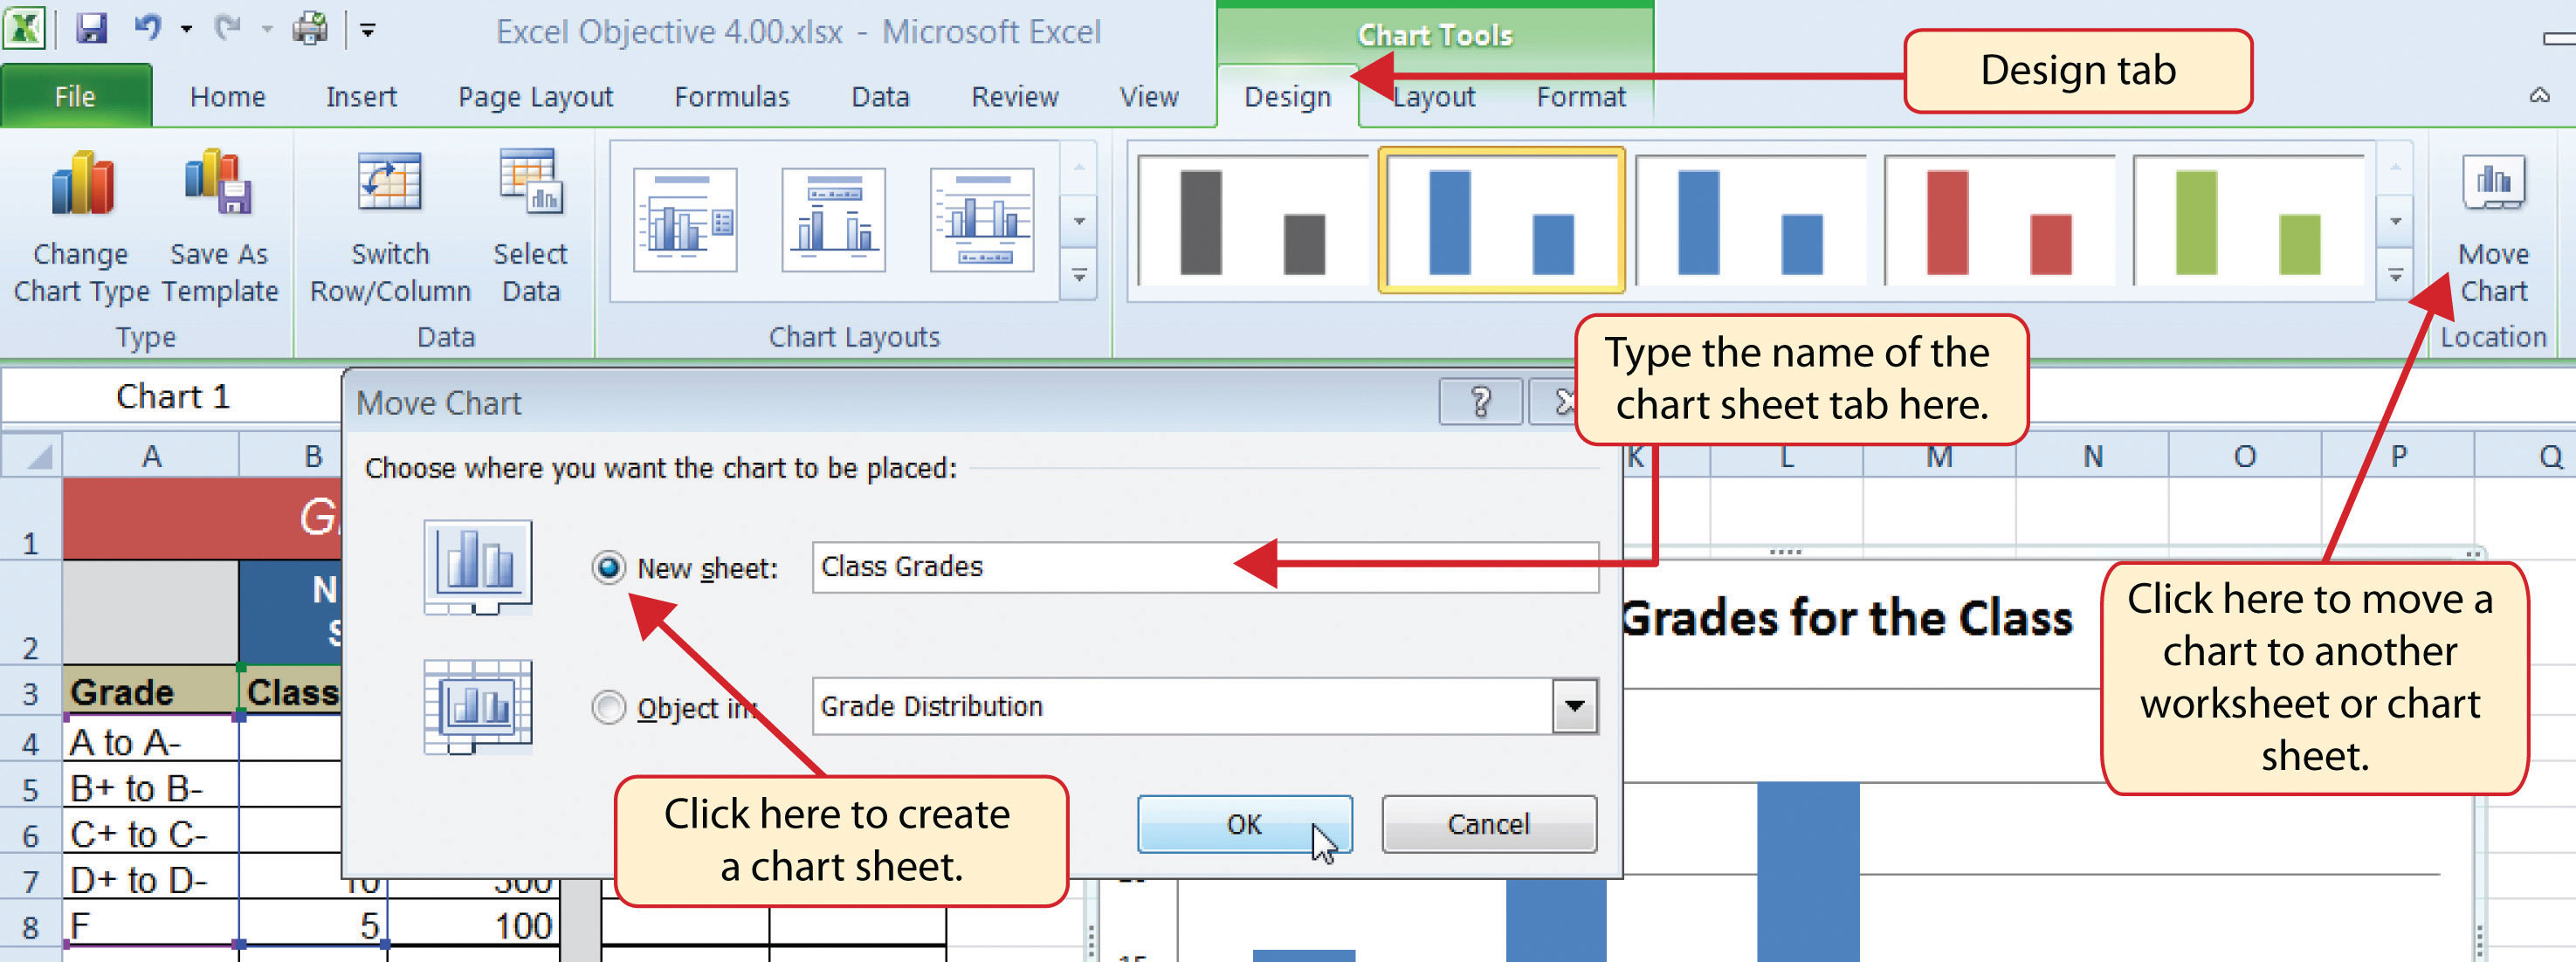 Worksheet Insert A New Worksheet In Excel Grass Fedjp